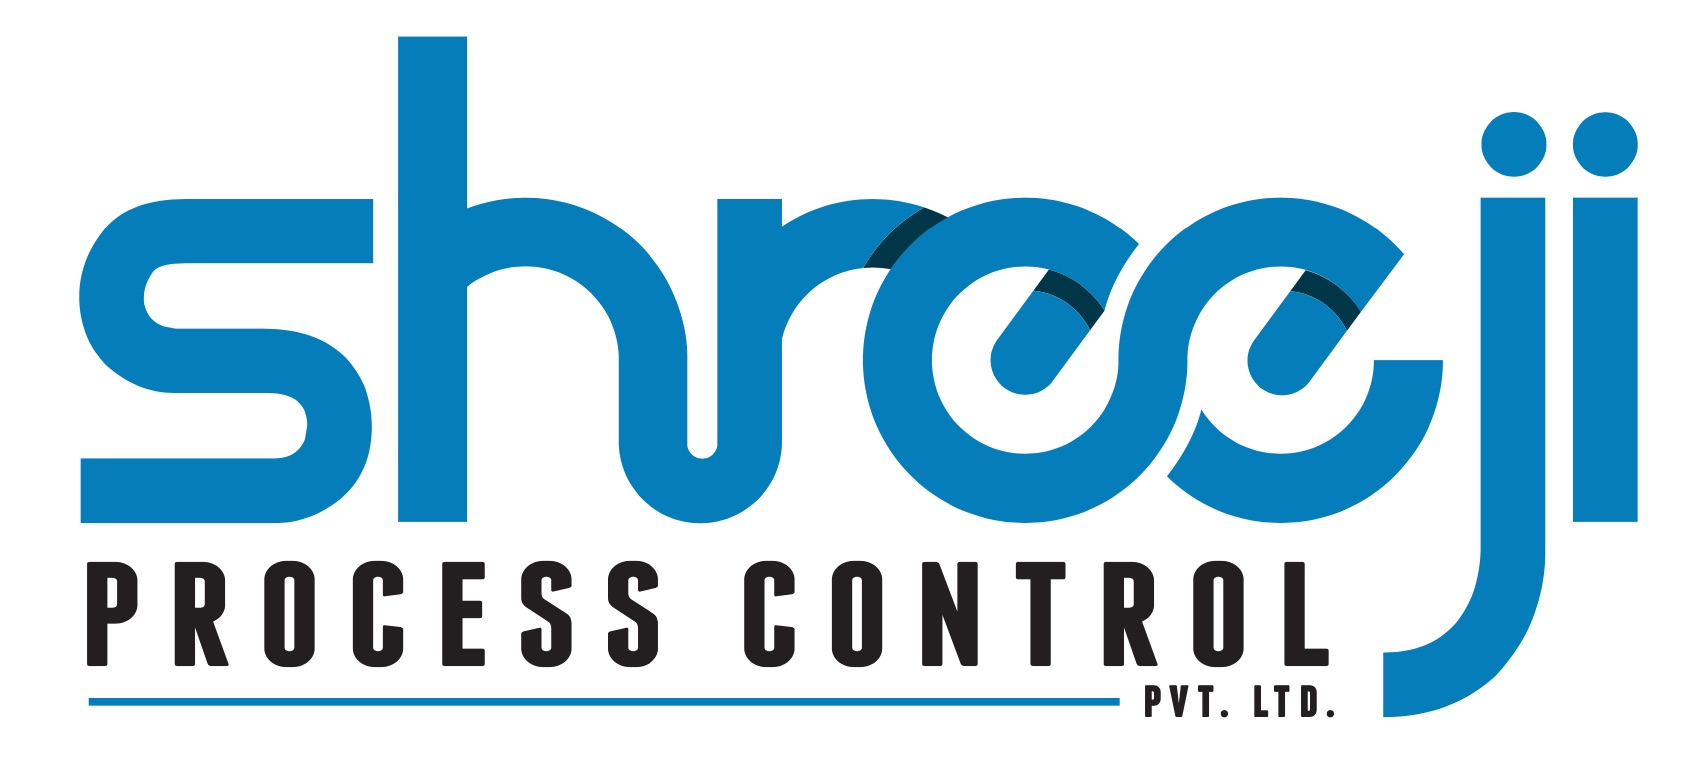 Shreeji Process Control Pvt Ltd